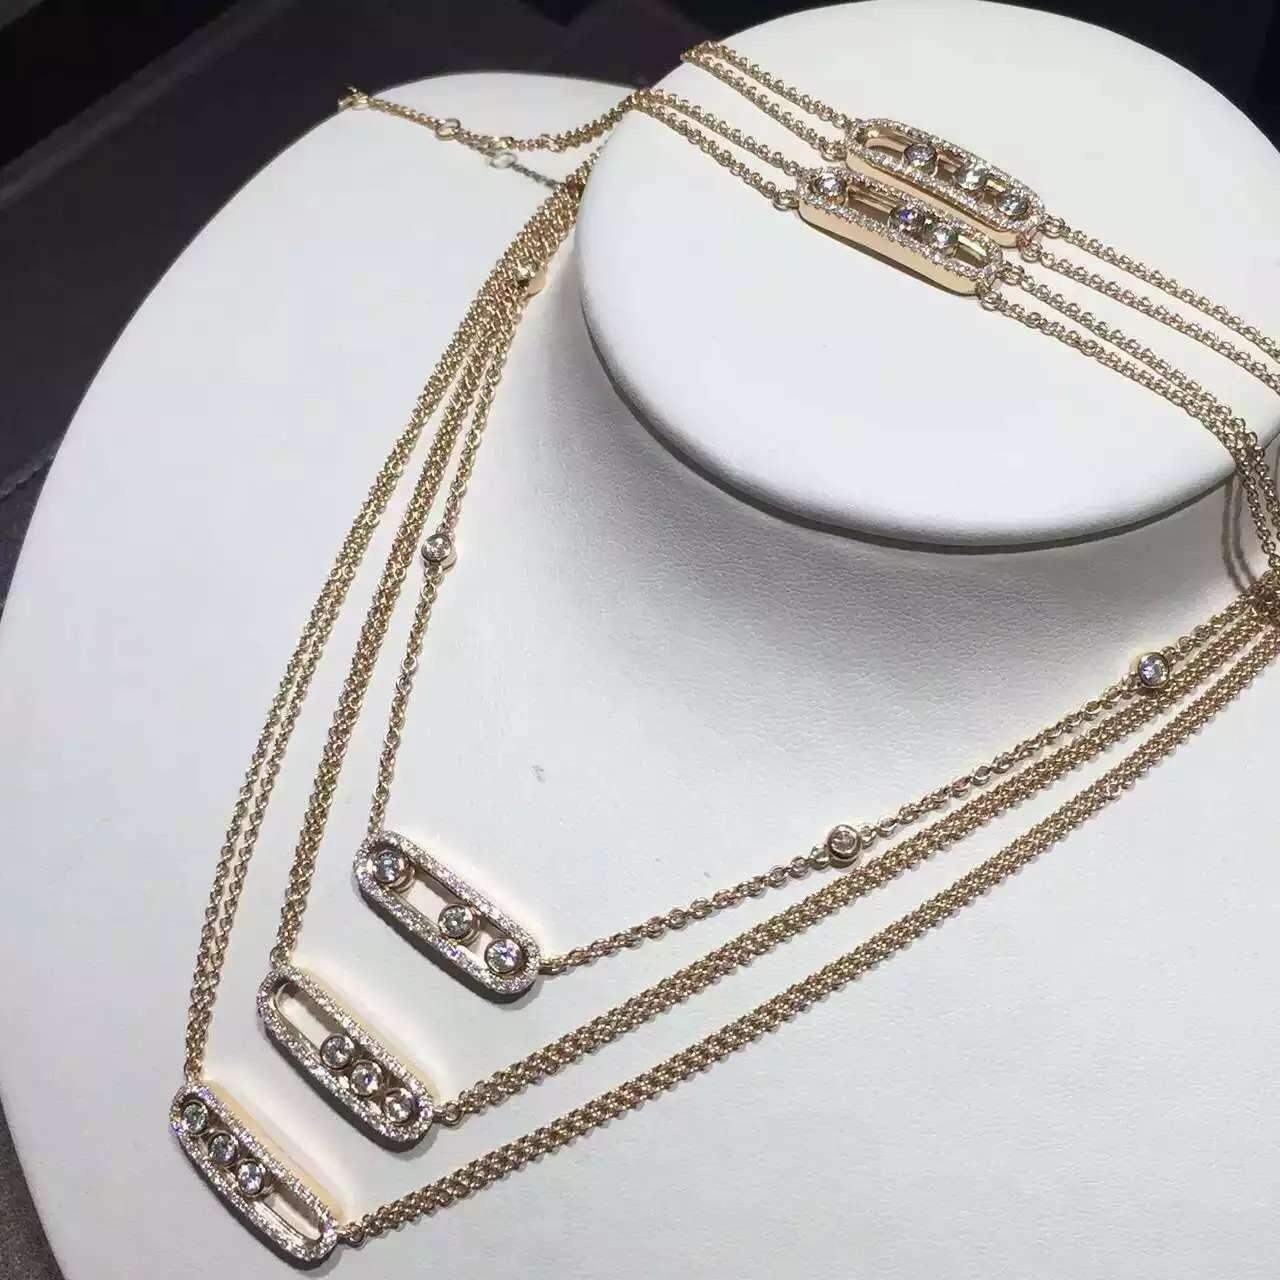 china messika move diamond necklace in yellow gold paris fine jewelry